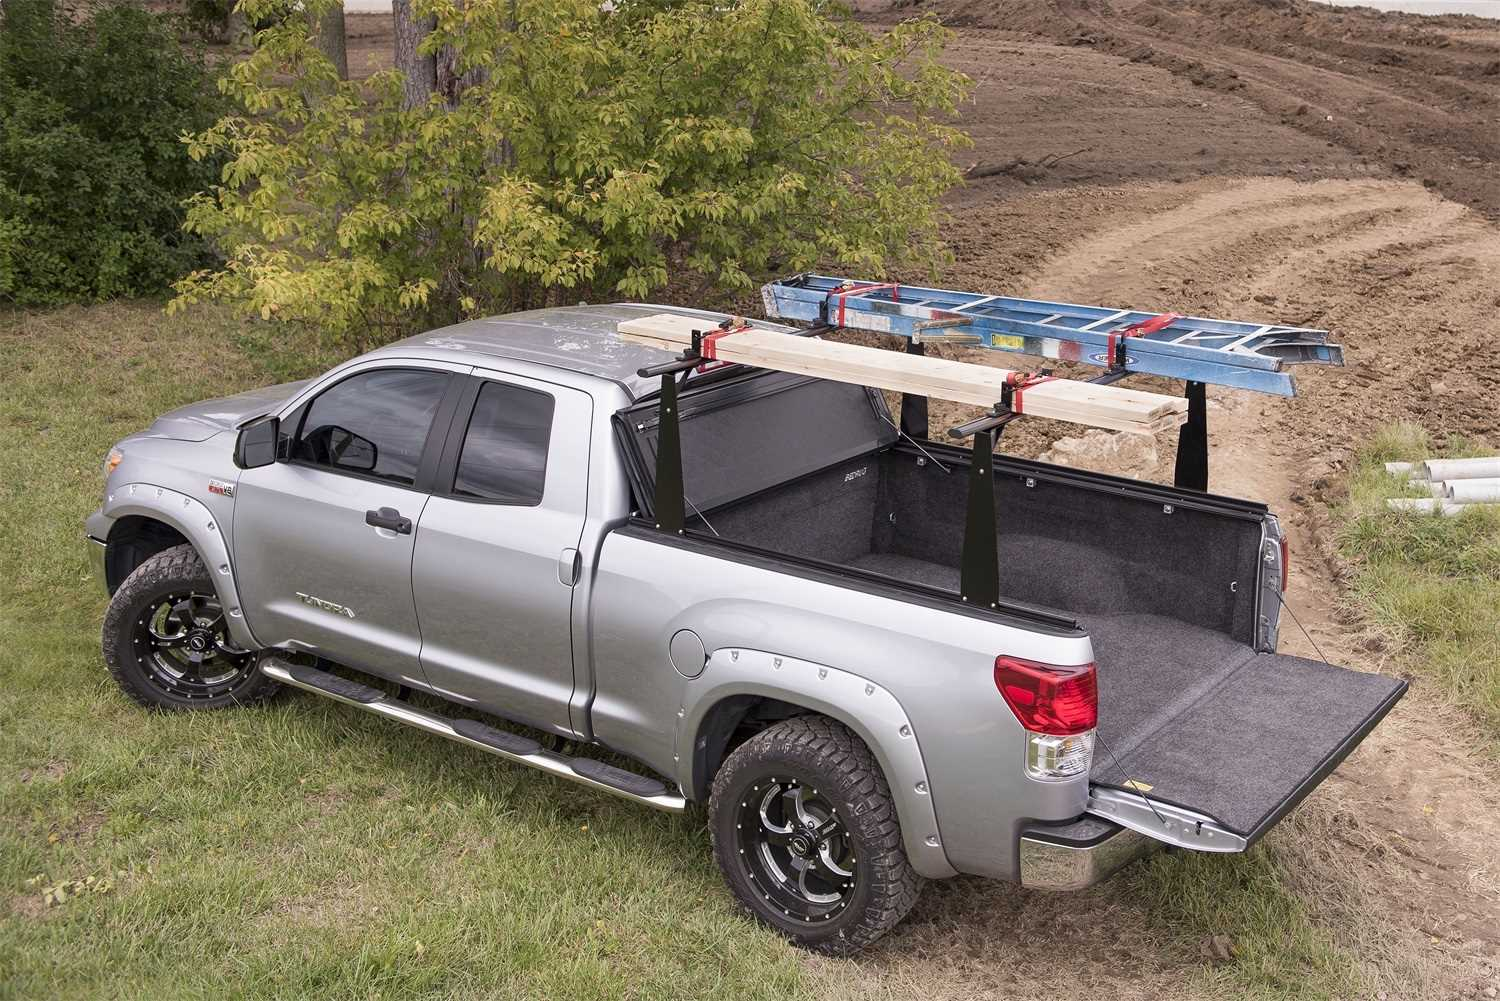 72410BT Bak Industries BAKFlip CS-F1 Hard Folding Truck Bed Cover/Integrated Rack System